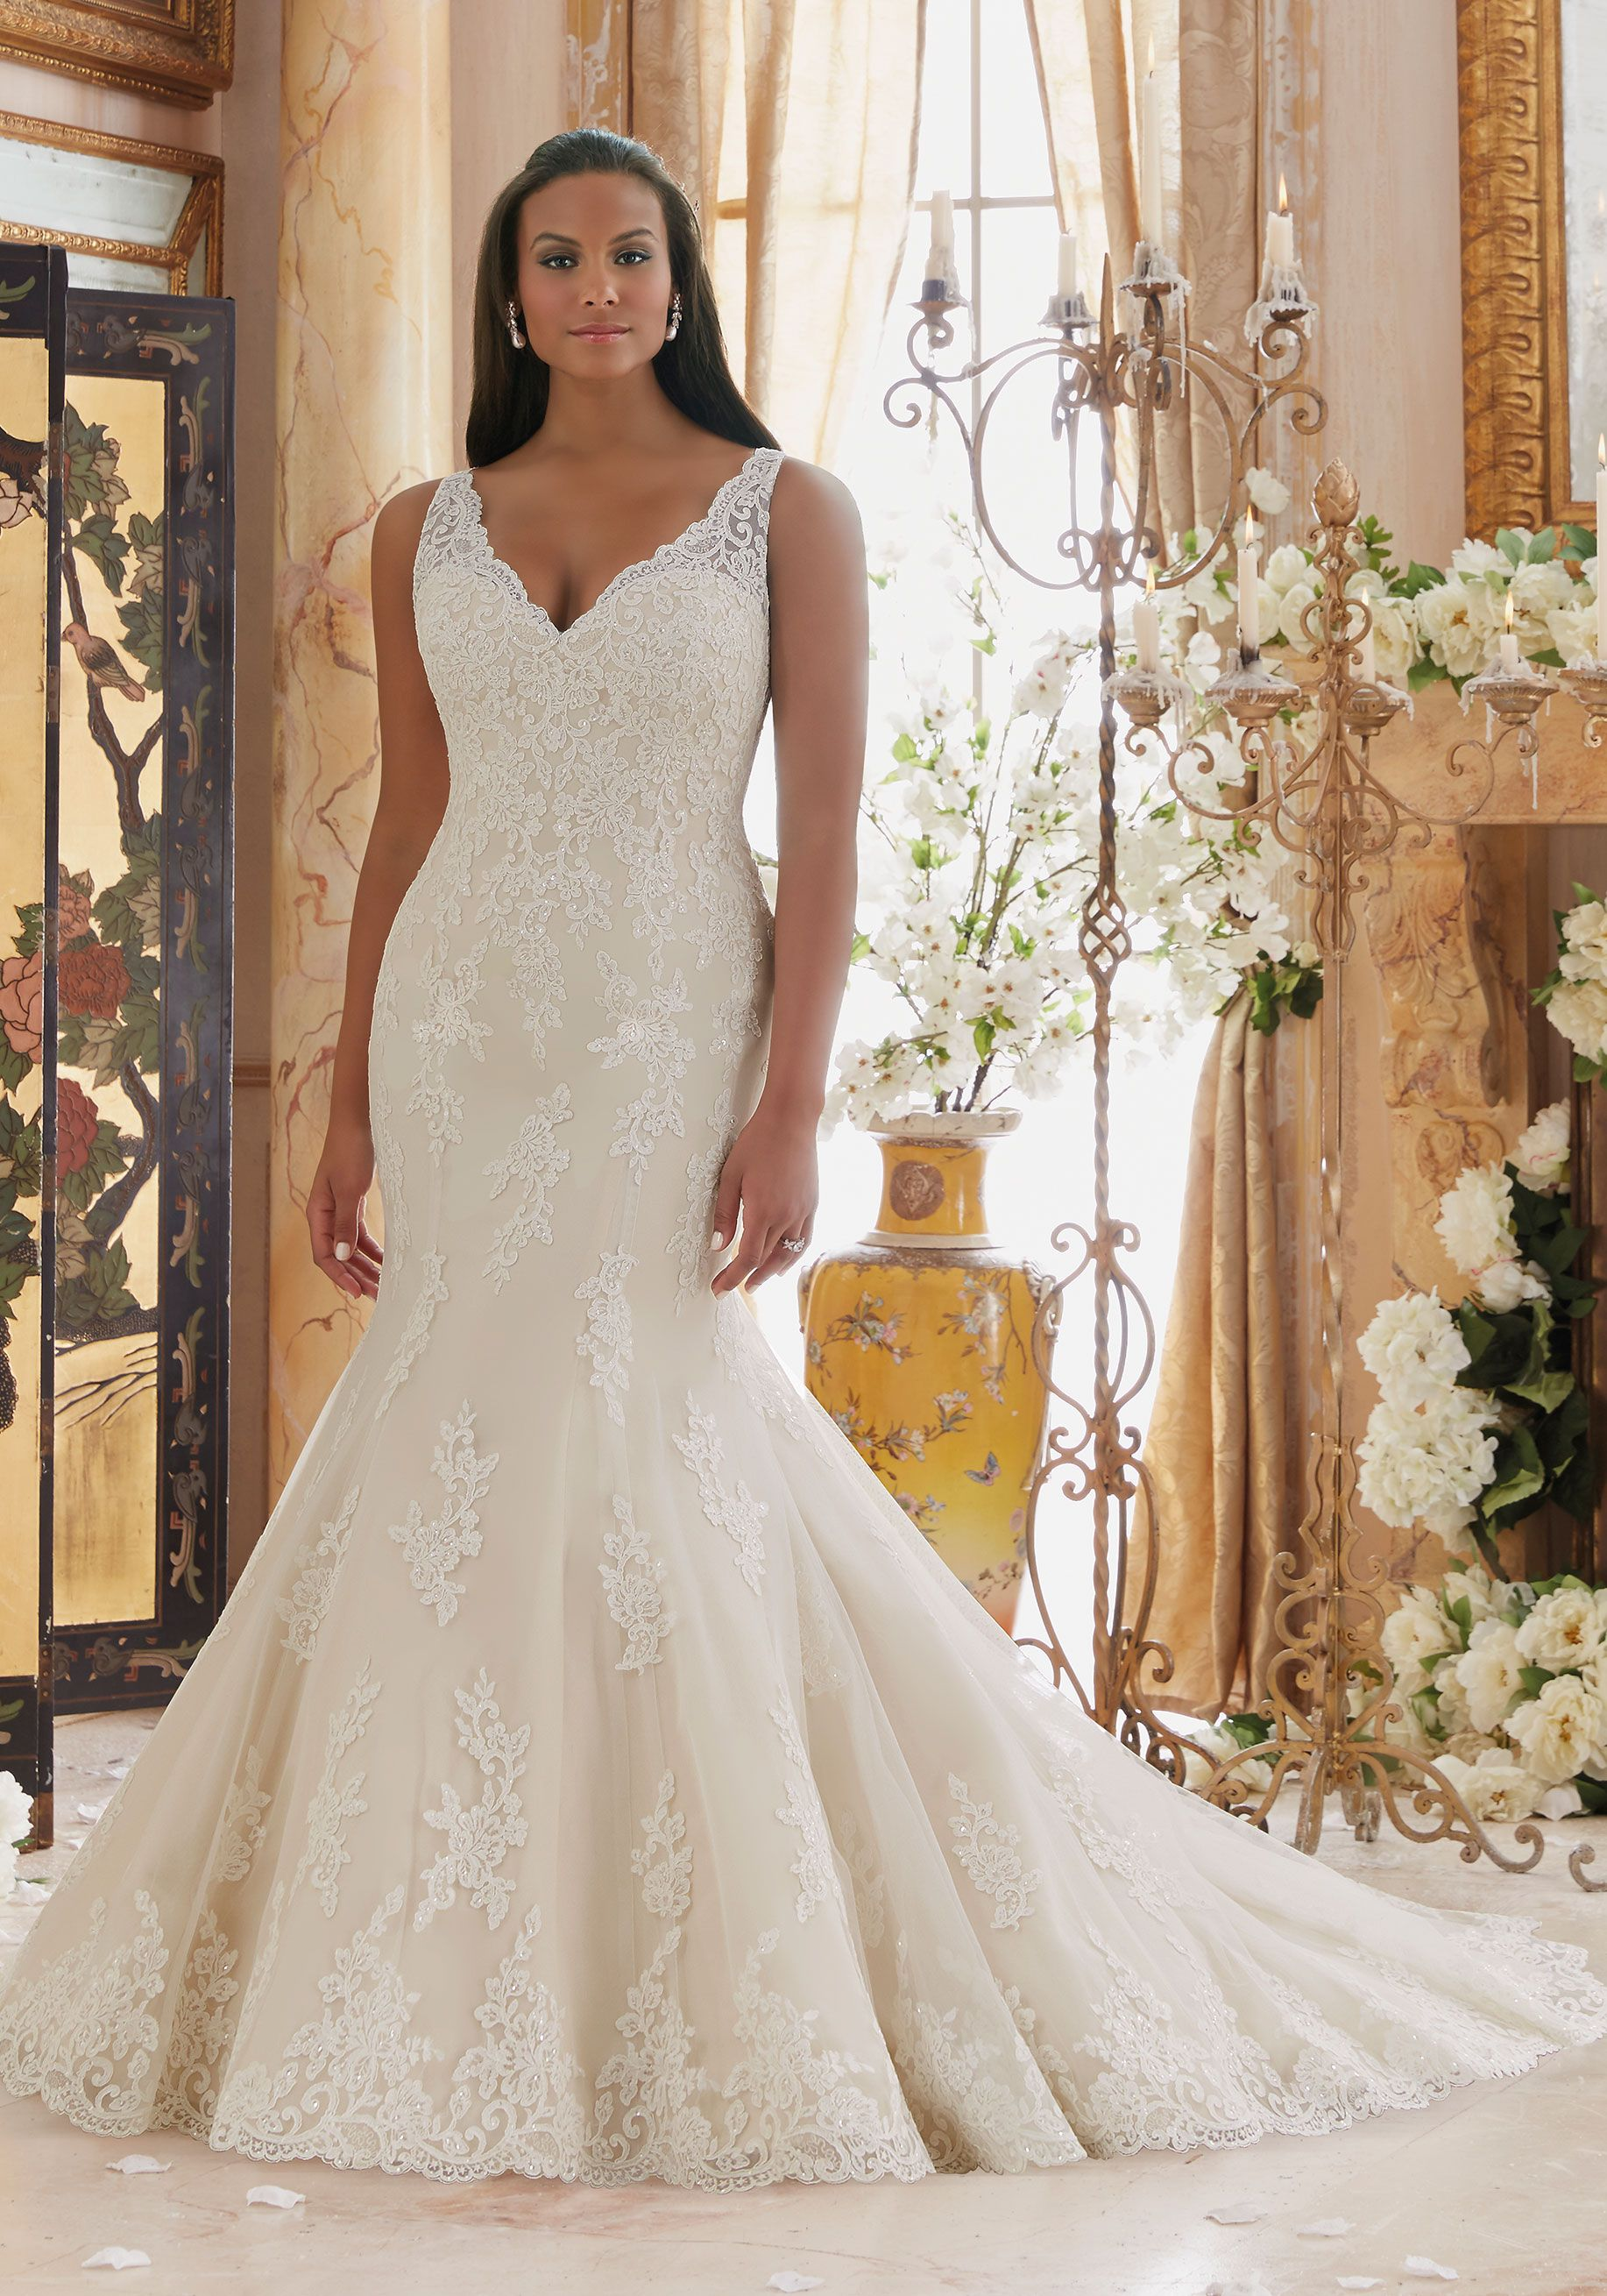 Stunning plus size wedding dresses wedding dress pinterest